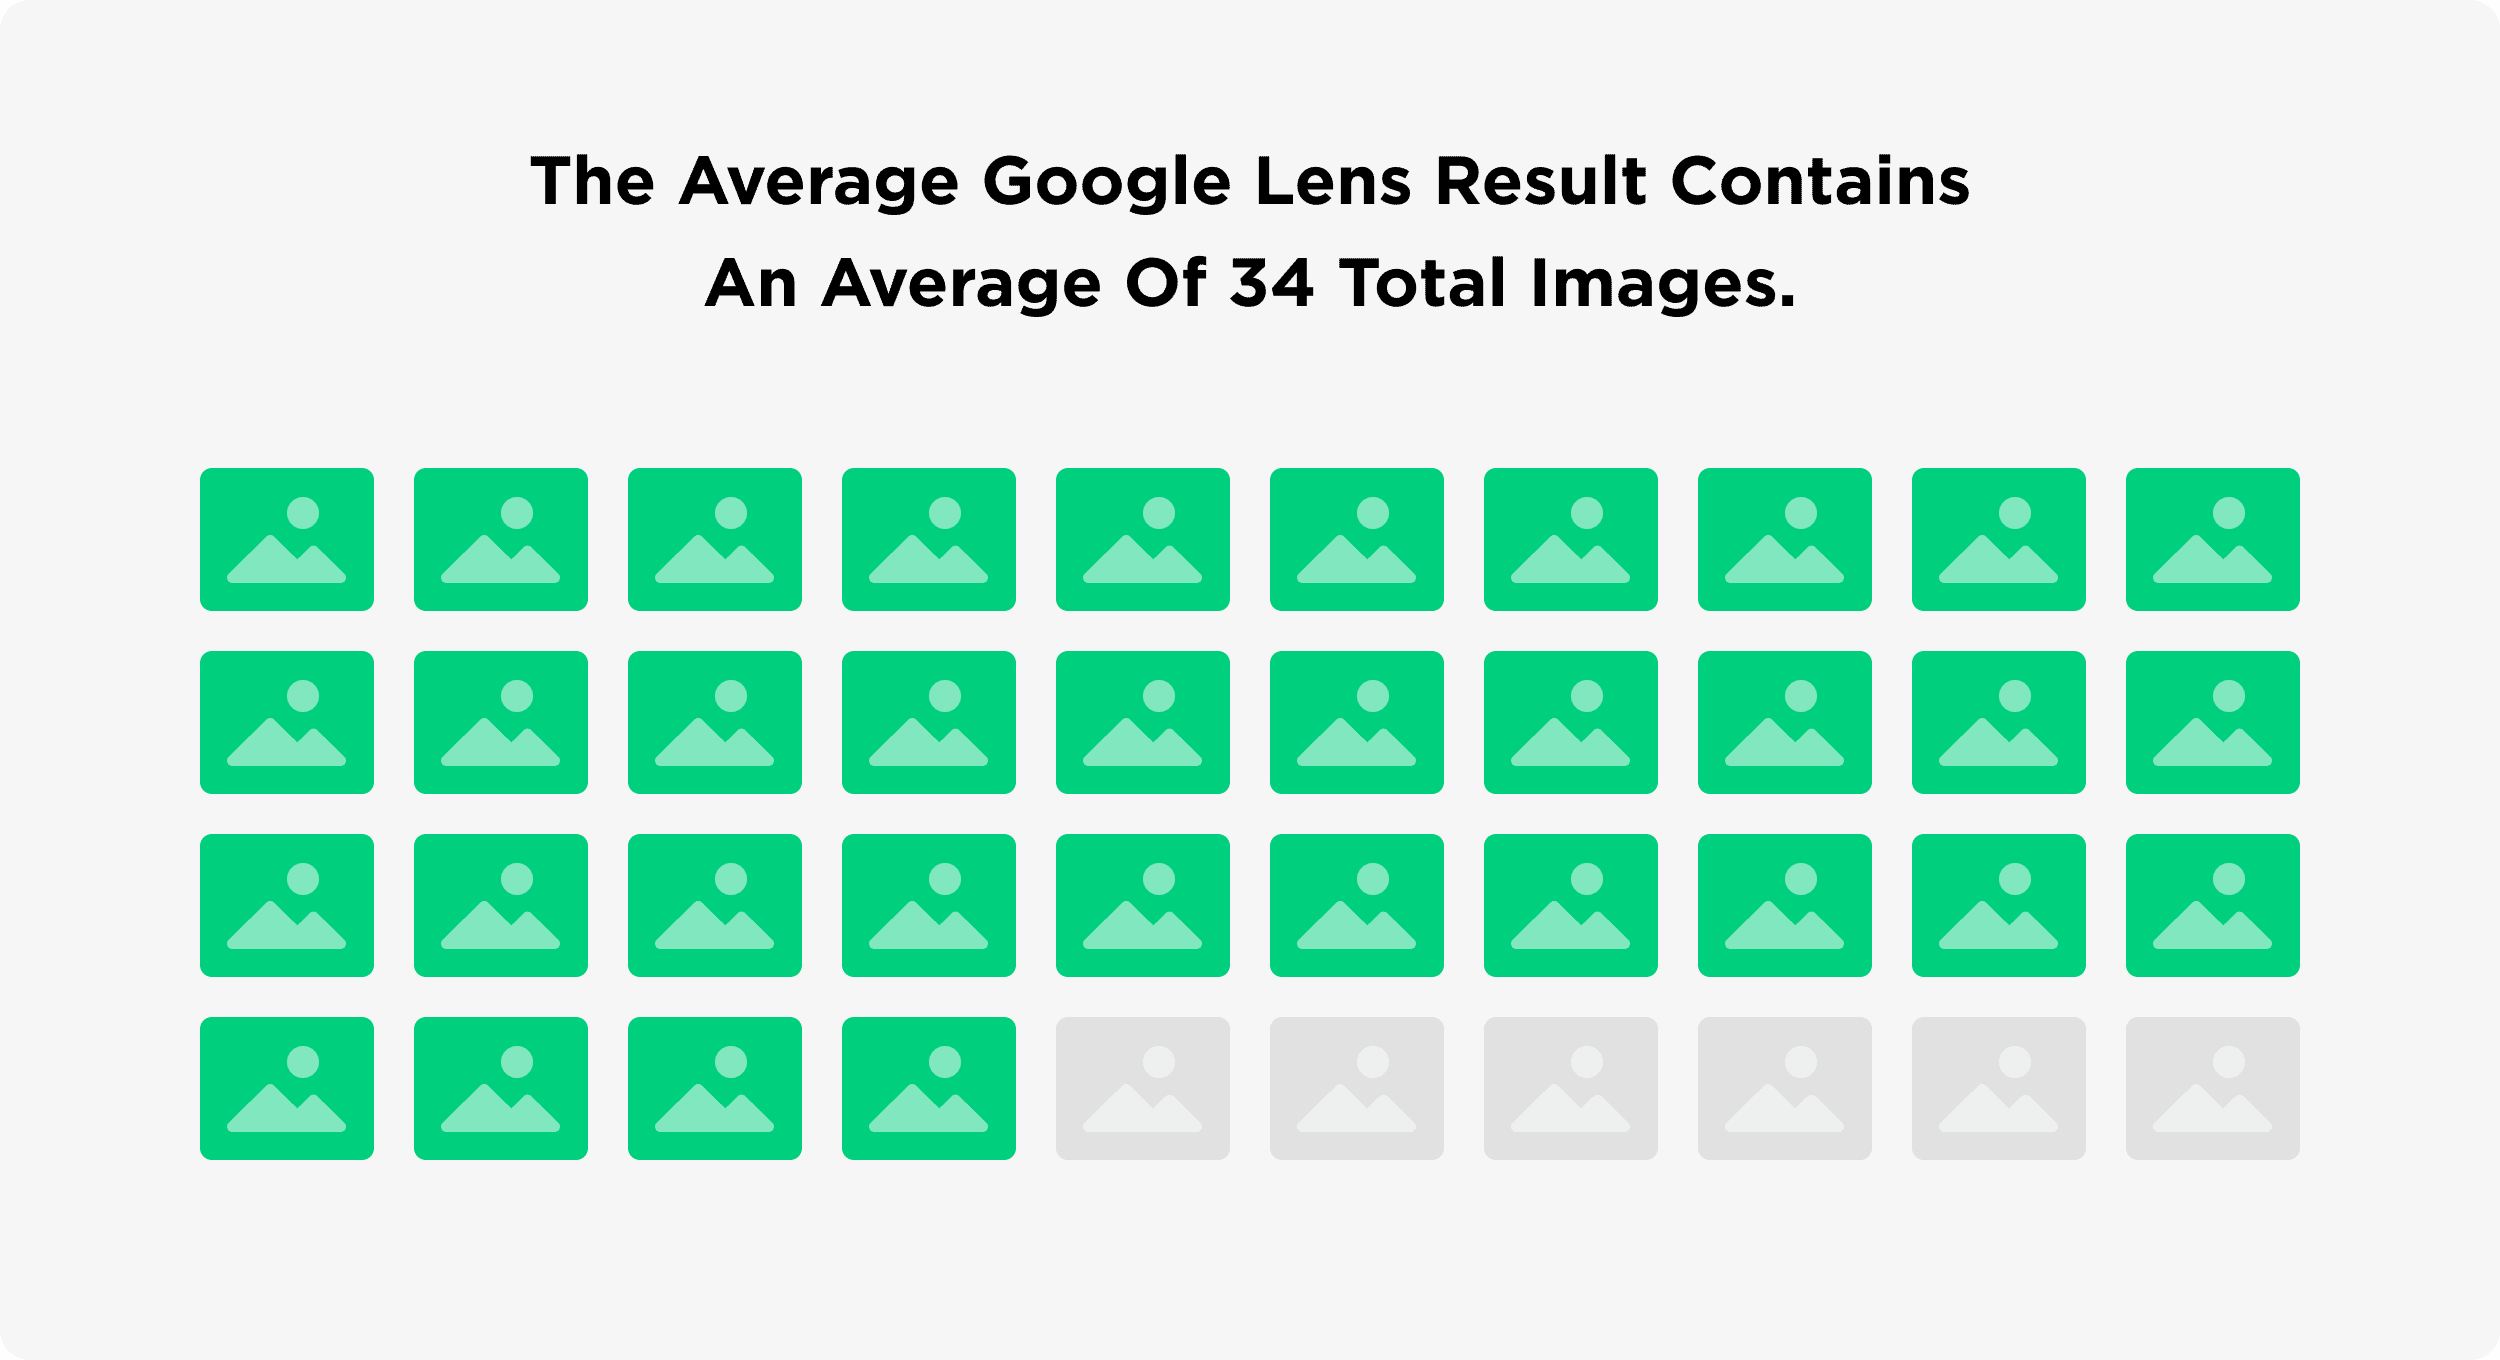 The Average Google Lens Result Contains An Average 34 Total Images